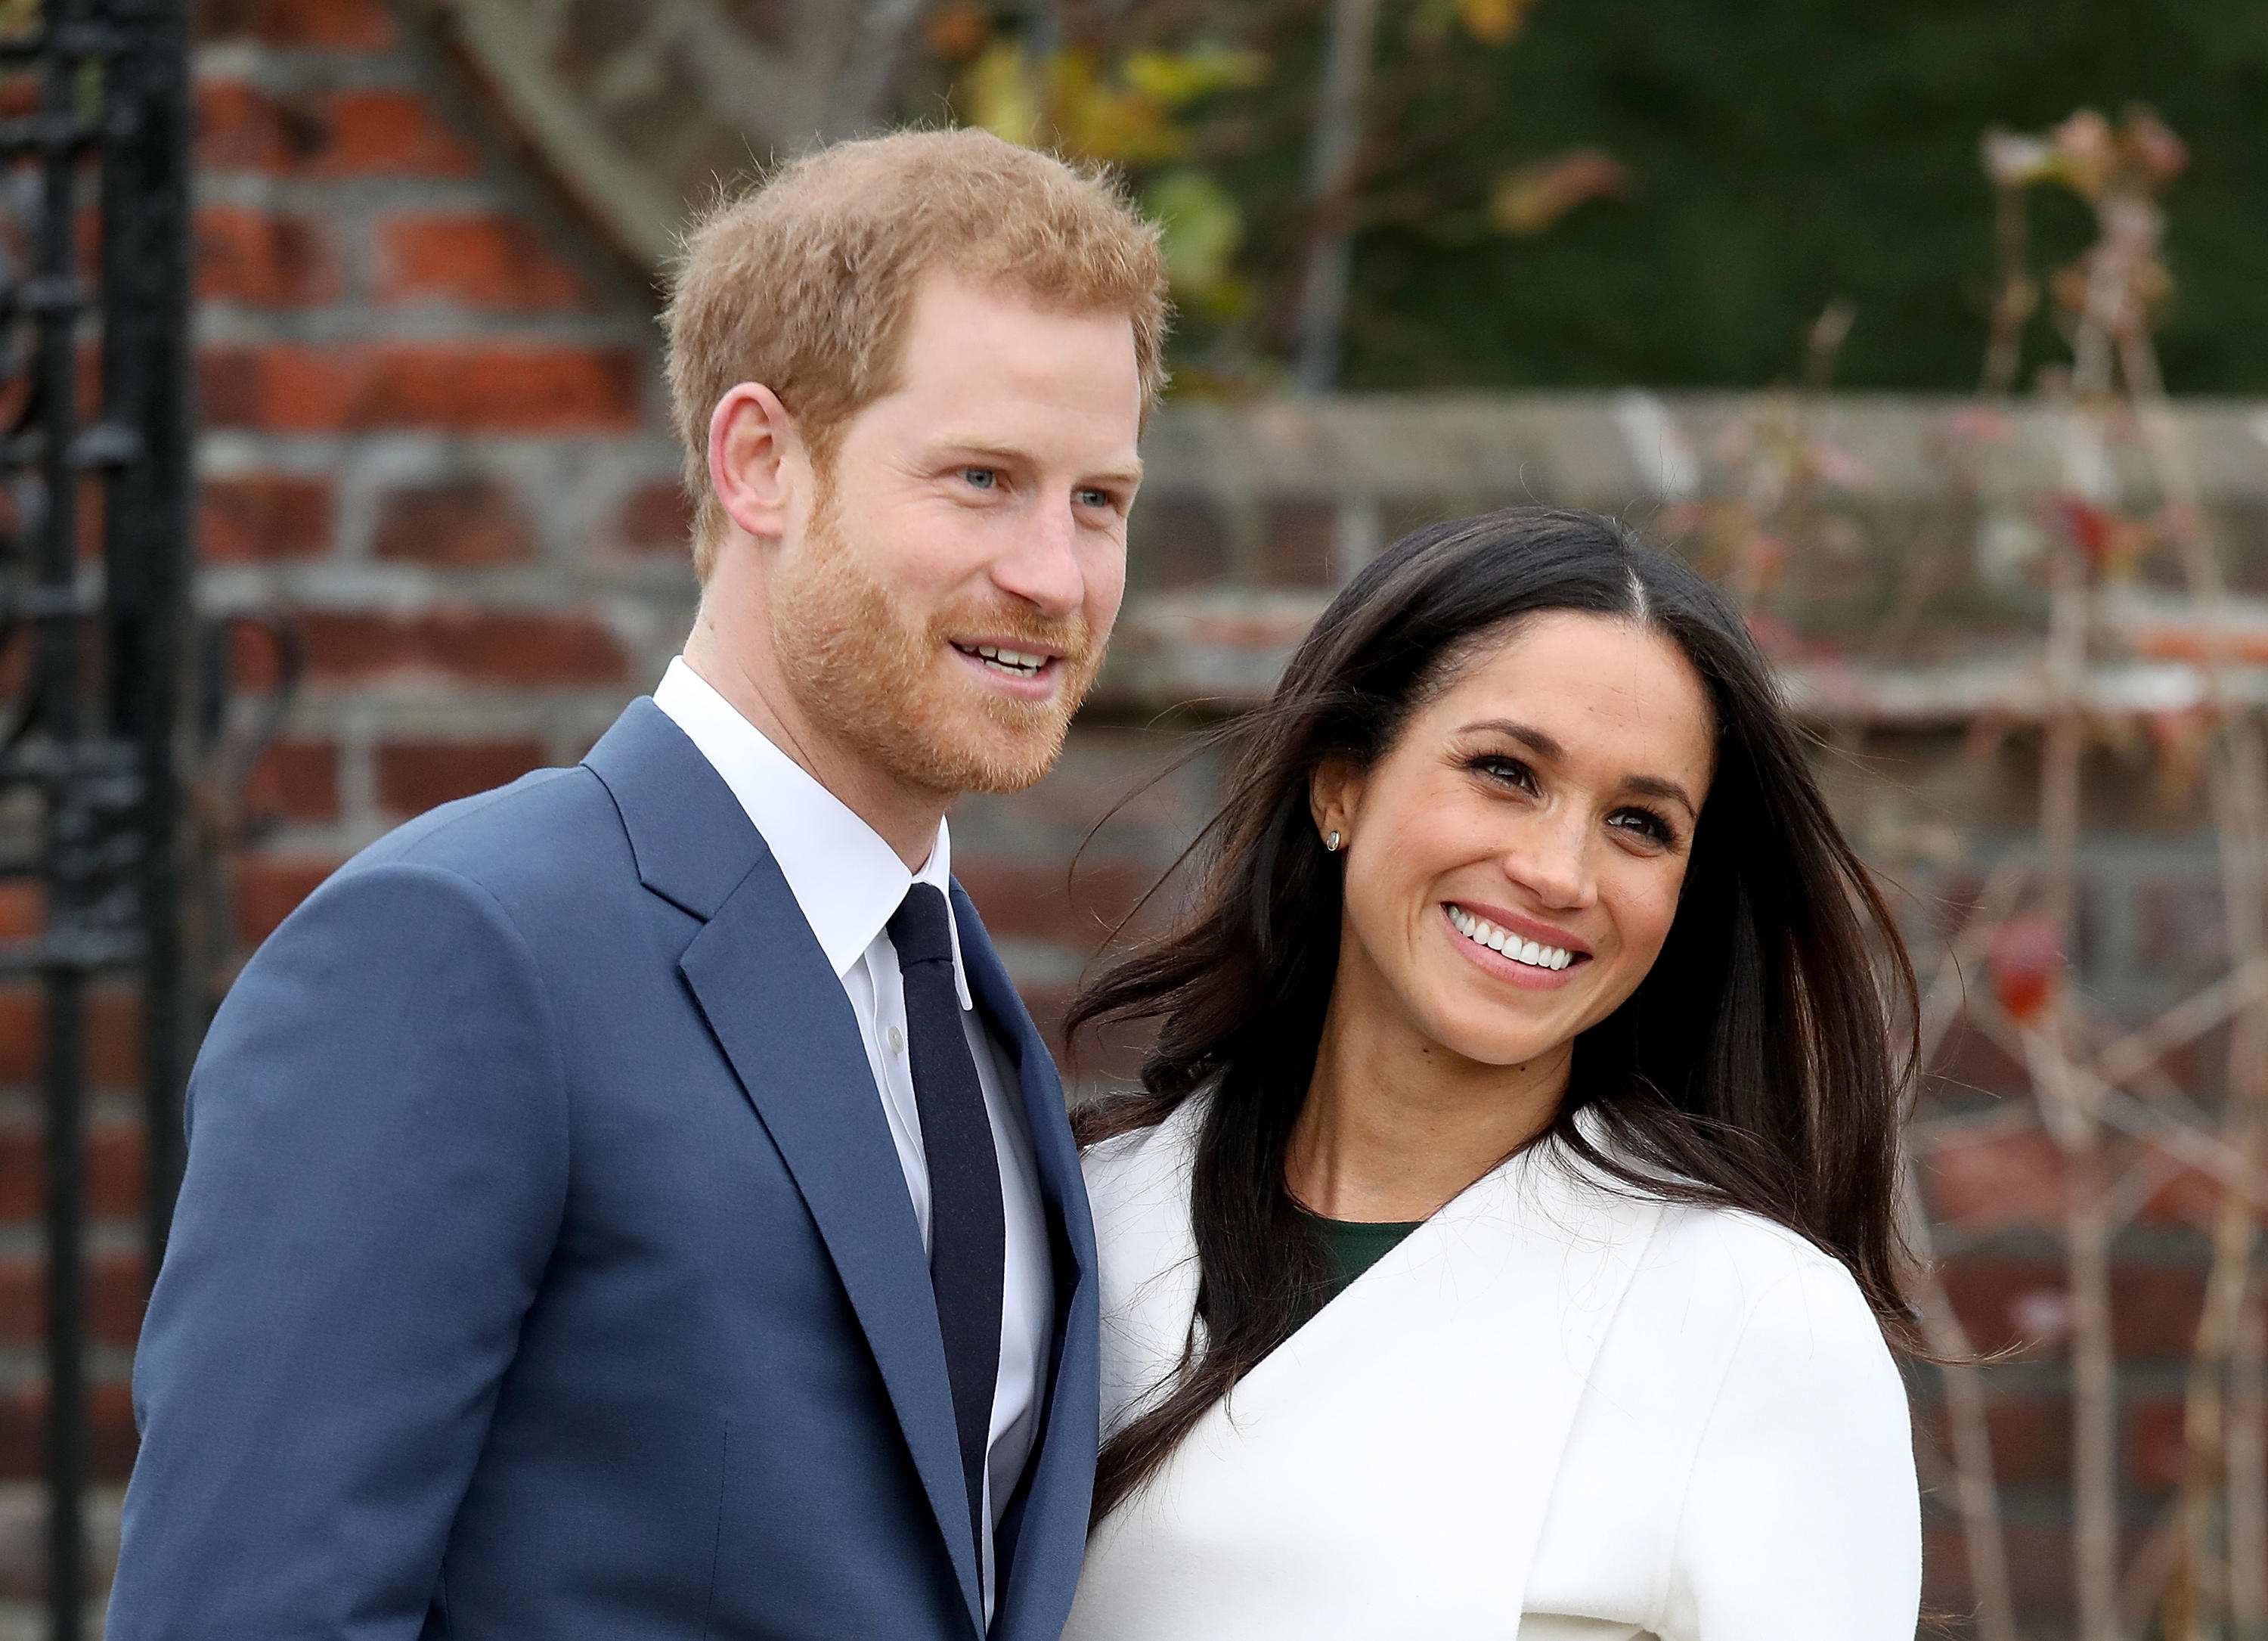 c7435cbe Royal rules: The dress, the bouquet and the royal wedding traditions Meghan  Markle has to follow